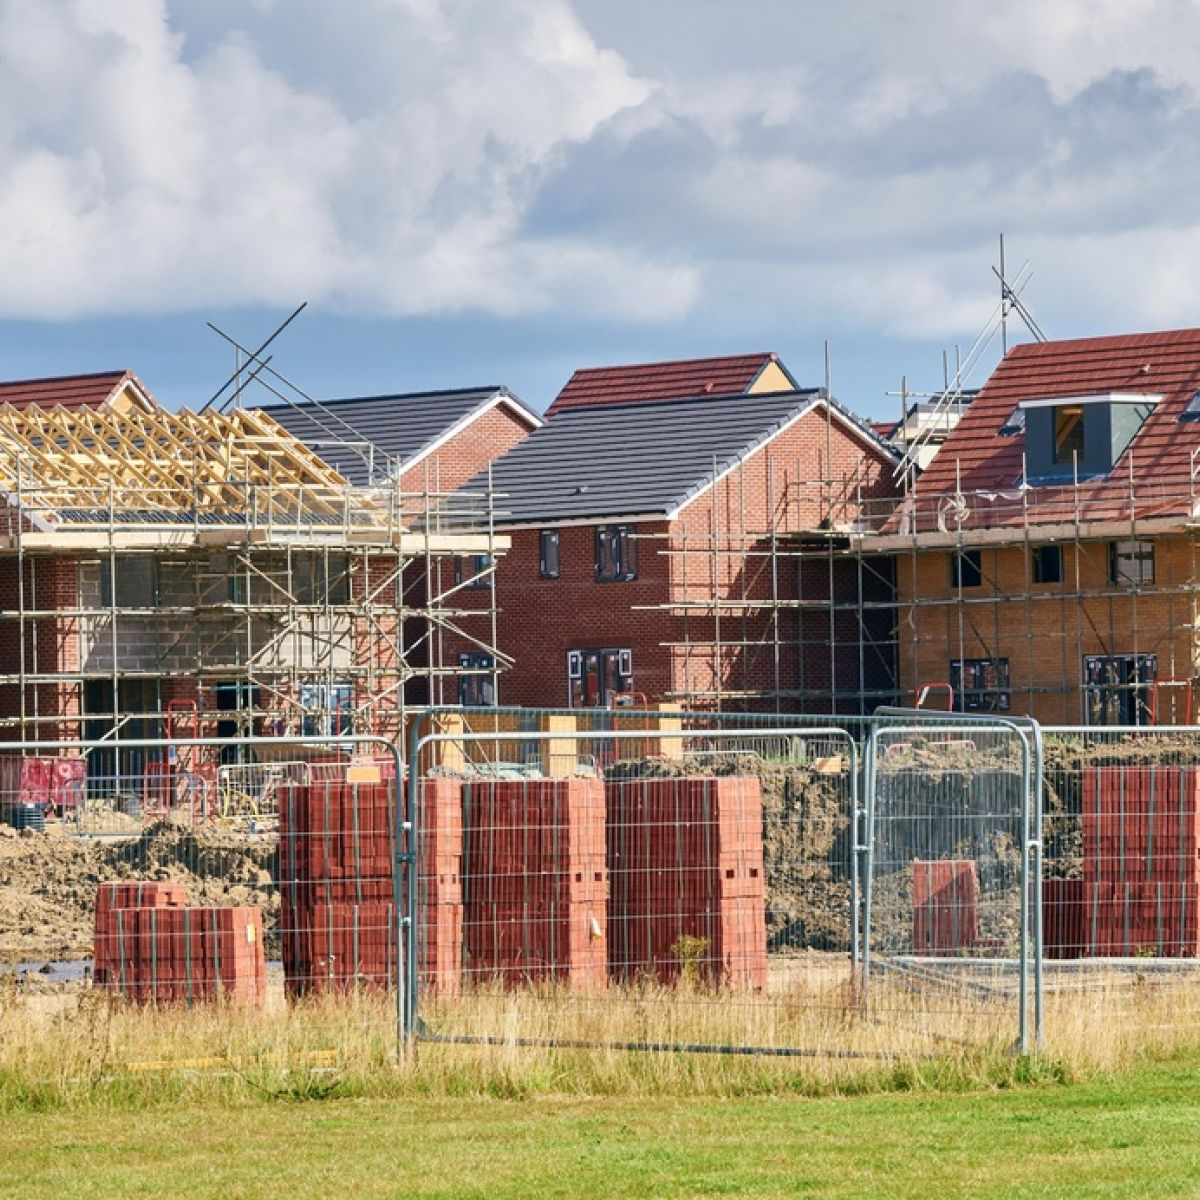 State sees slowdown in Irish property in funds after tax move